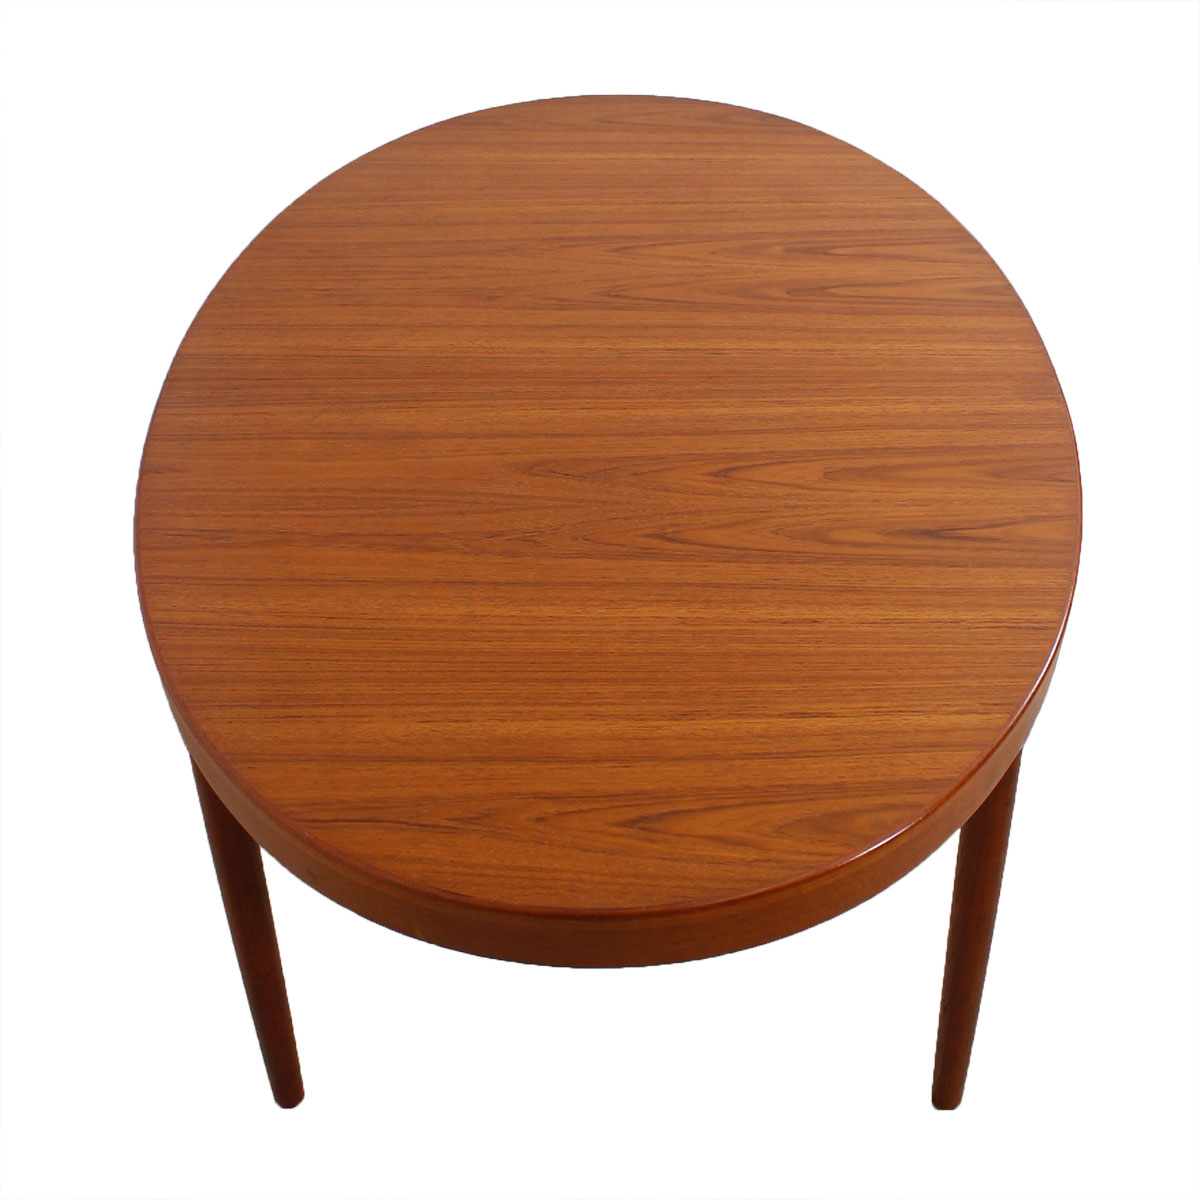 Harry Ostergaard for A/S Randers Expanding Oval Teak Table + PROTECTIVE PADS